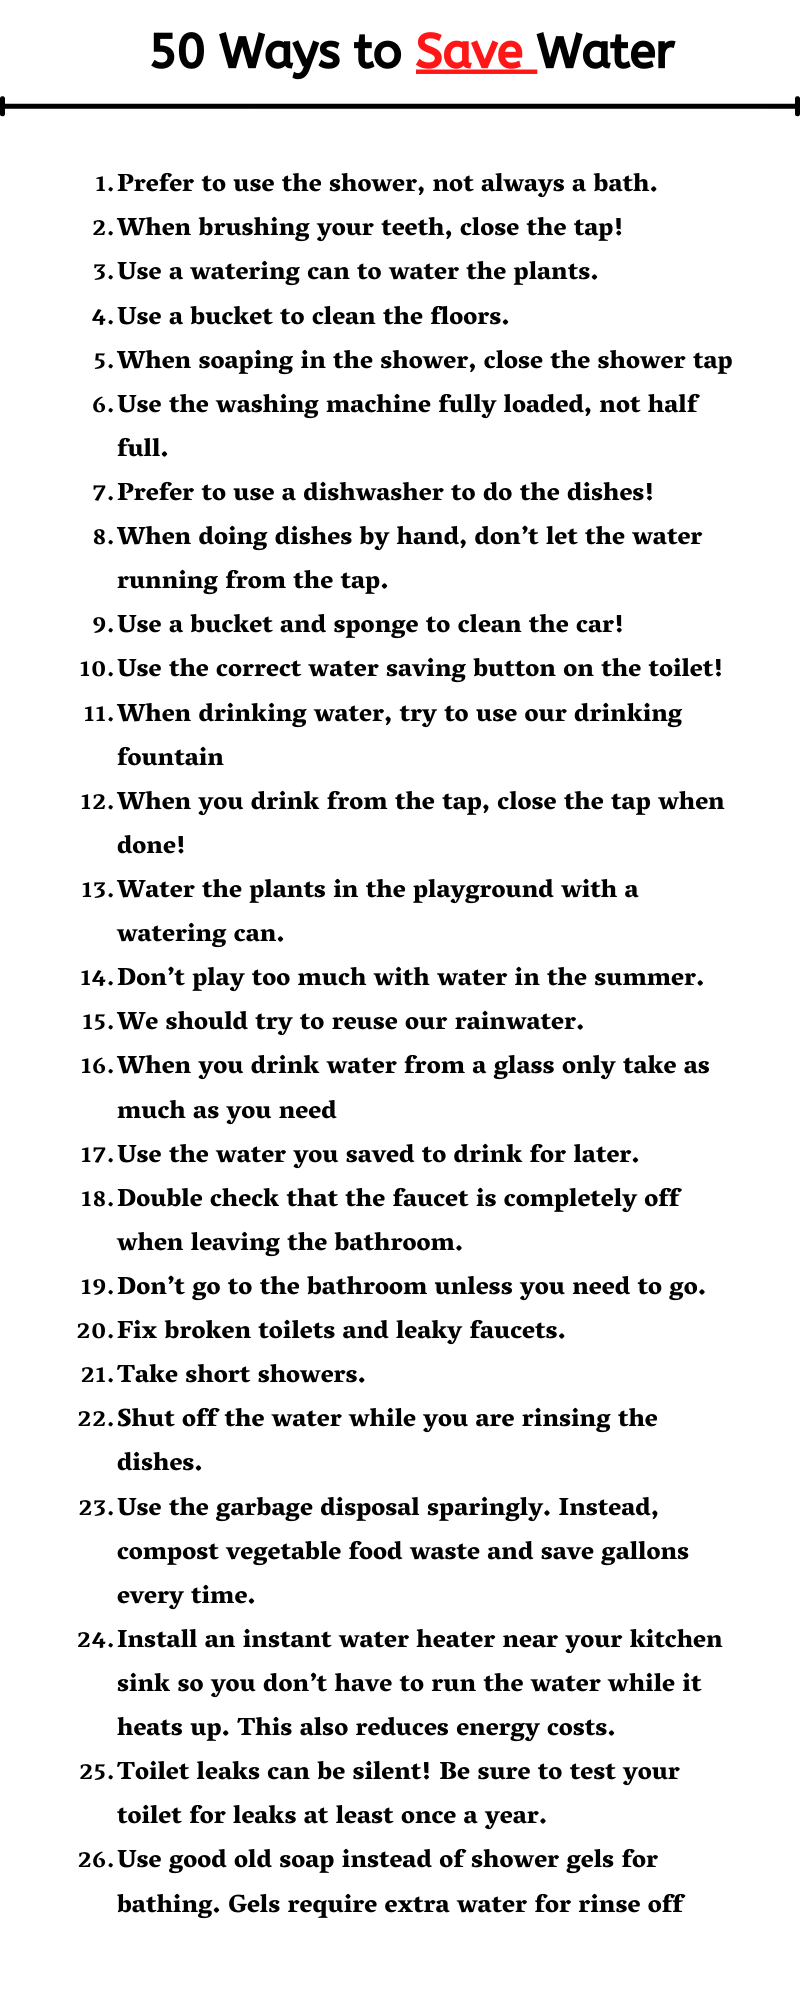 50 Ways to Save Water